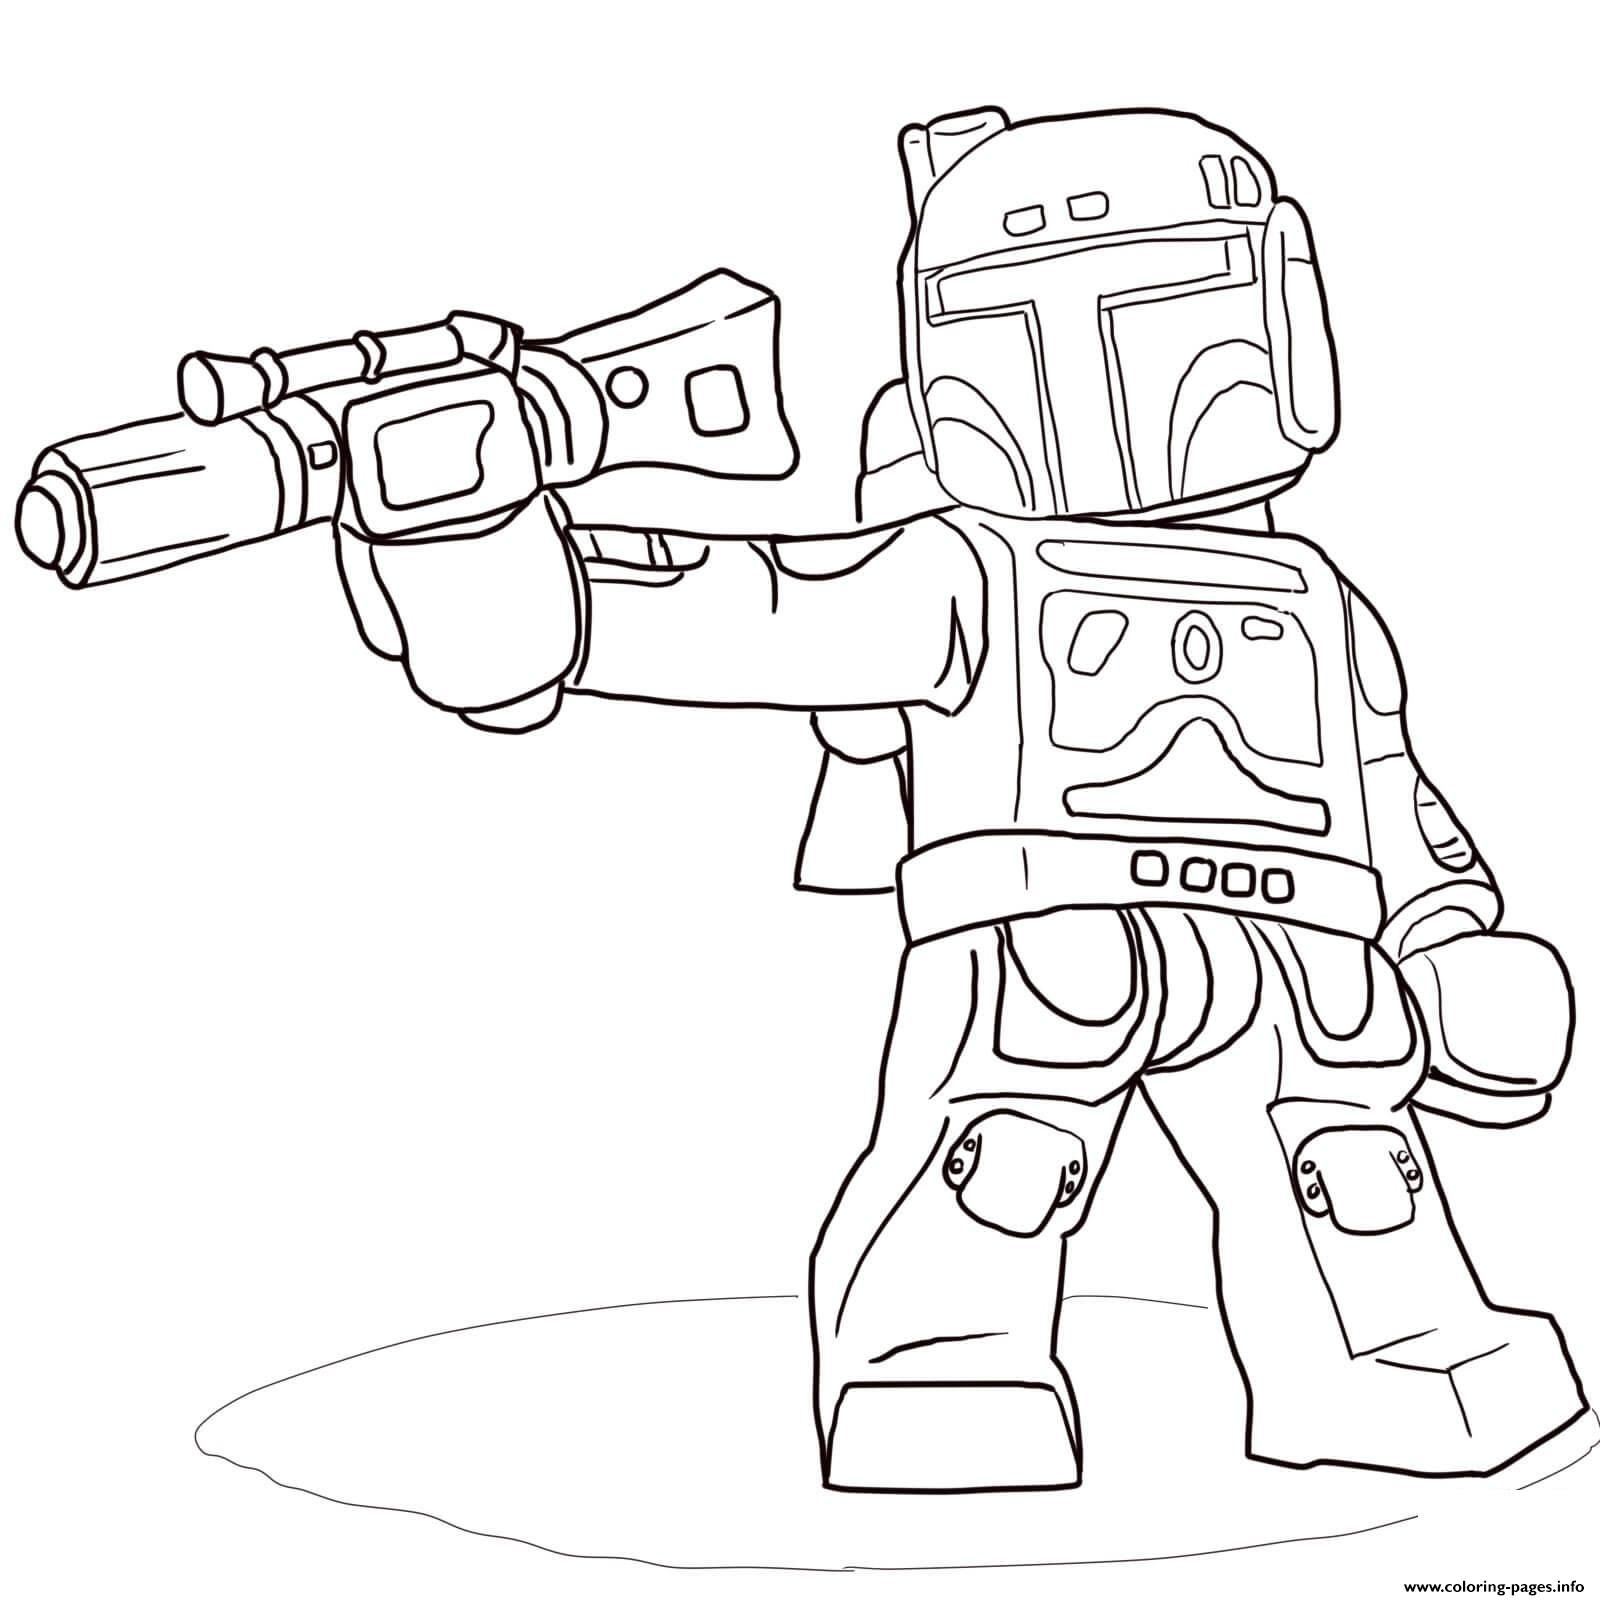 Lego Star Wars Boba Fett Coloring Pages Printable Collection Lego Coloring Pages Star Wars Colors Lego Coloring